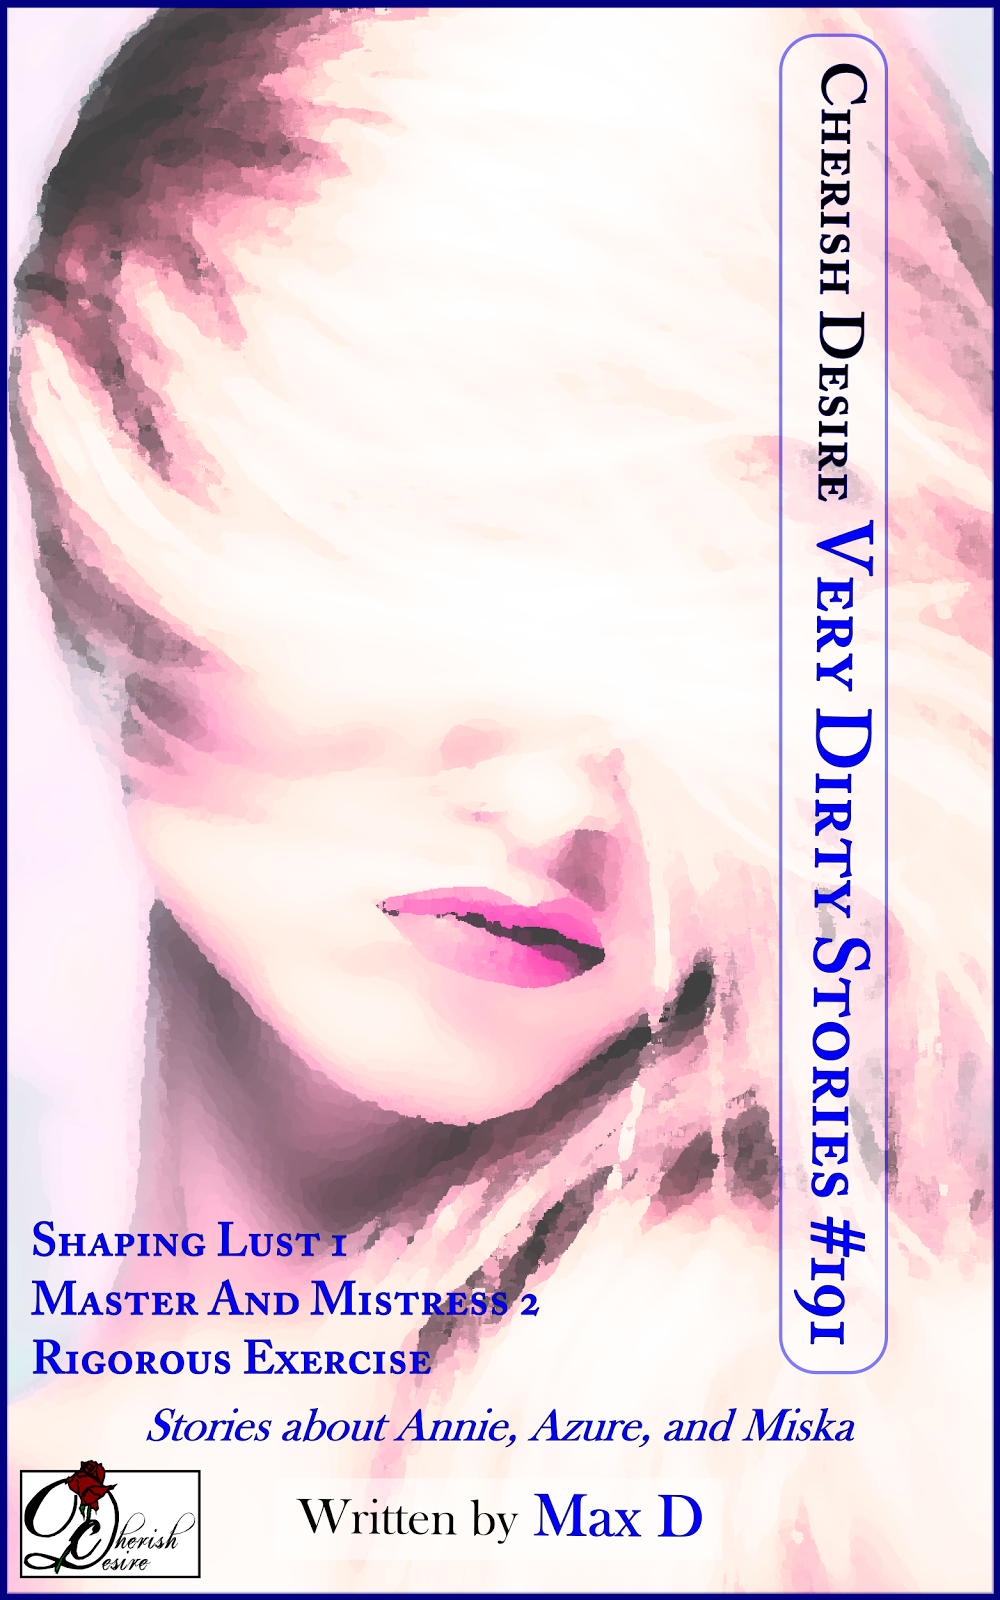 Cherish Desire: Very Dirty Stories #191, Max D, erotica